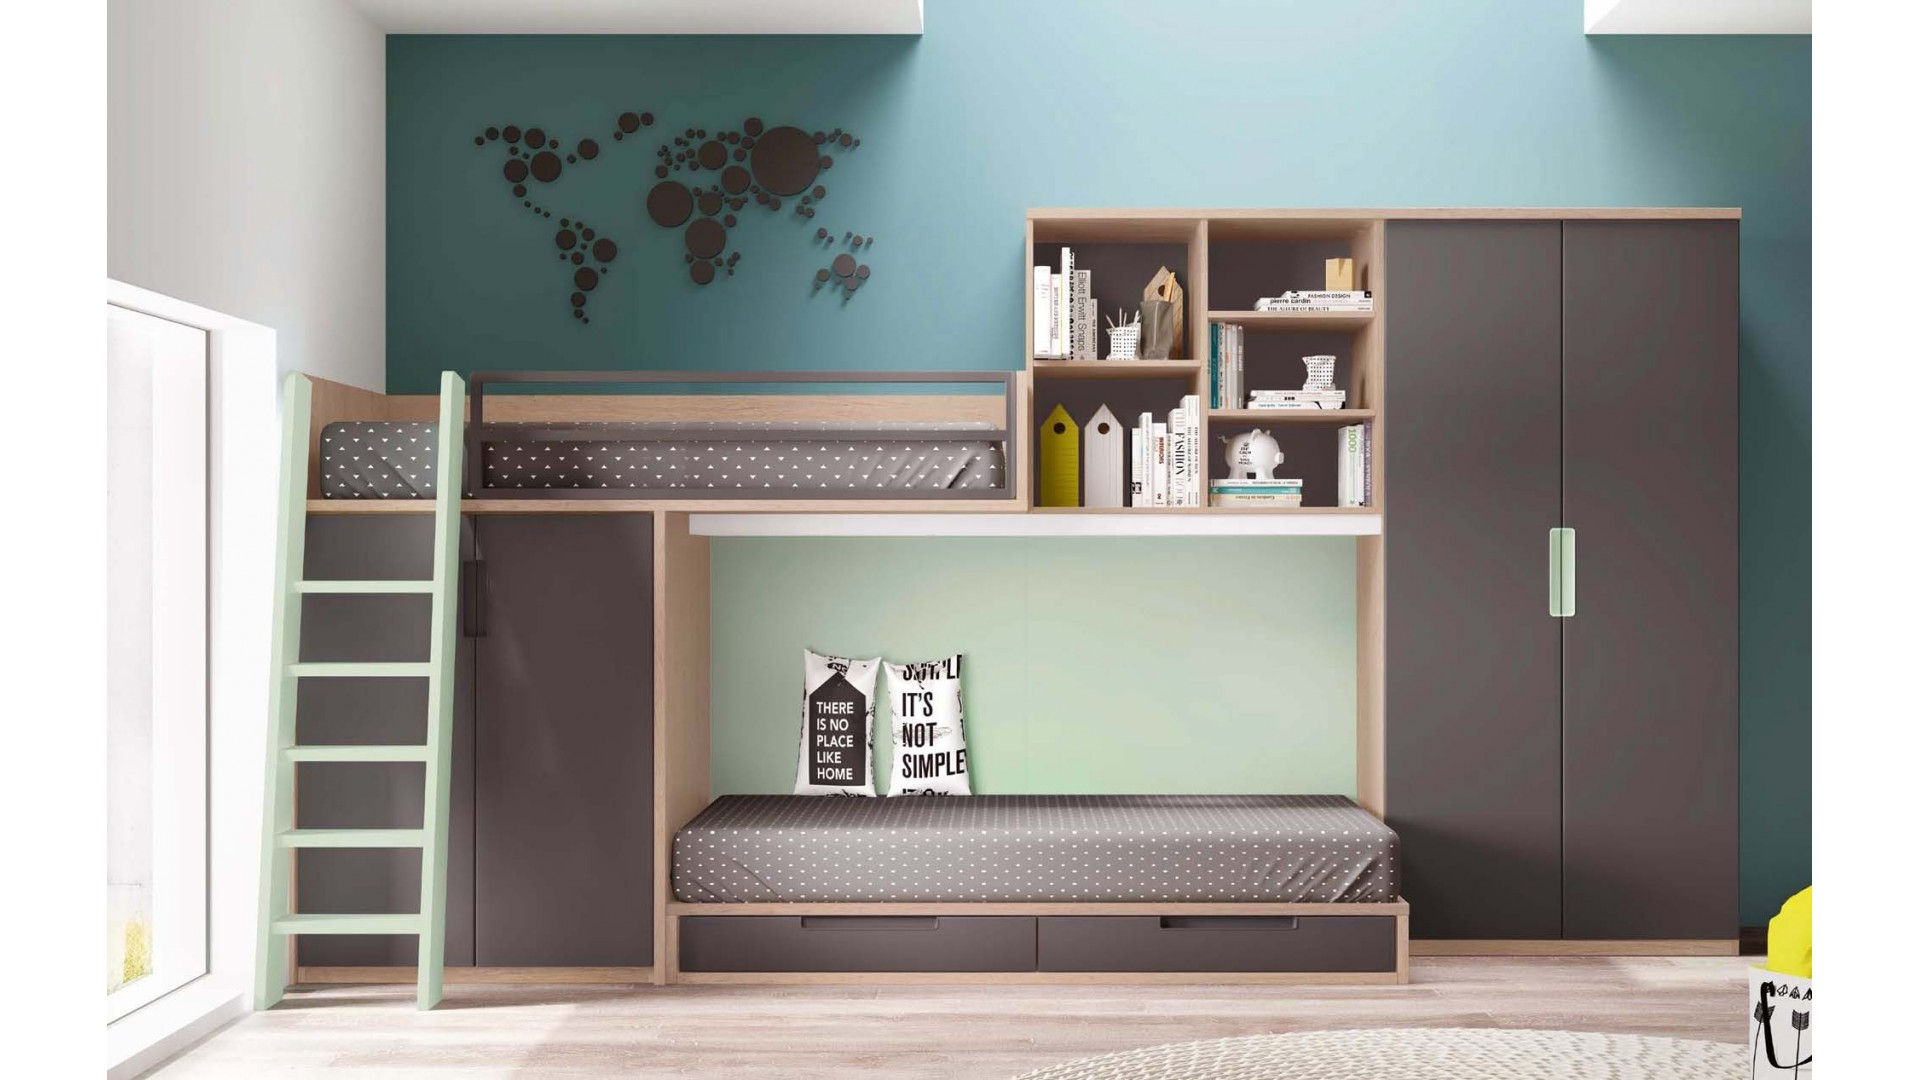 lit superpose avec canape maison design. Black Bedroom Furniture Sets. Home Design Ideas